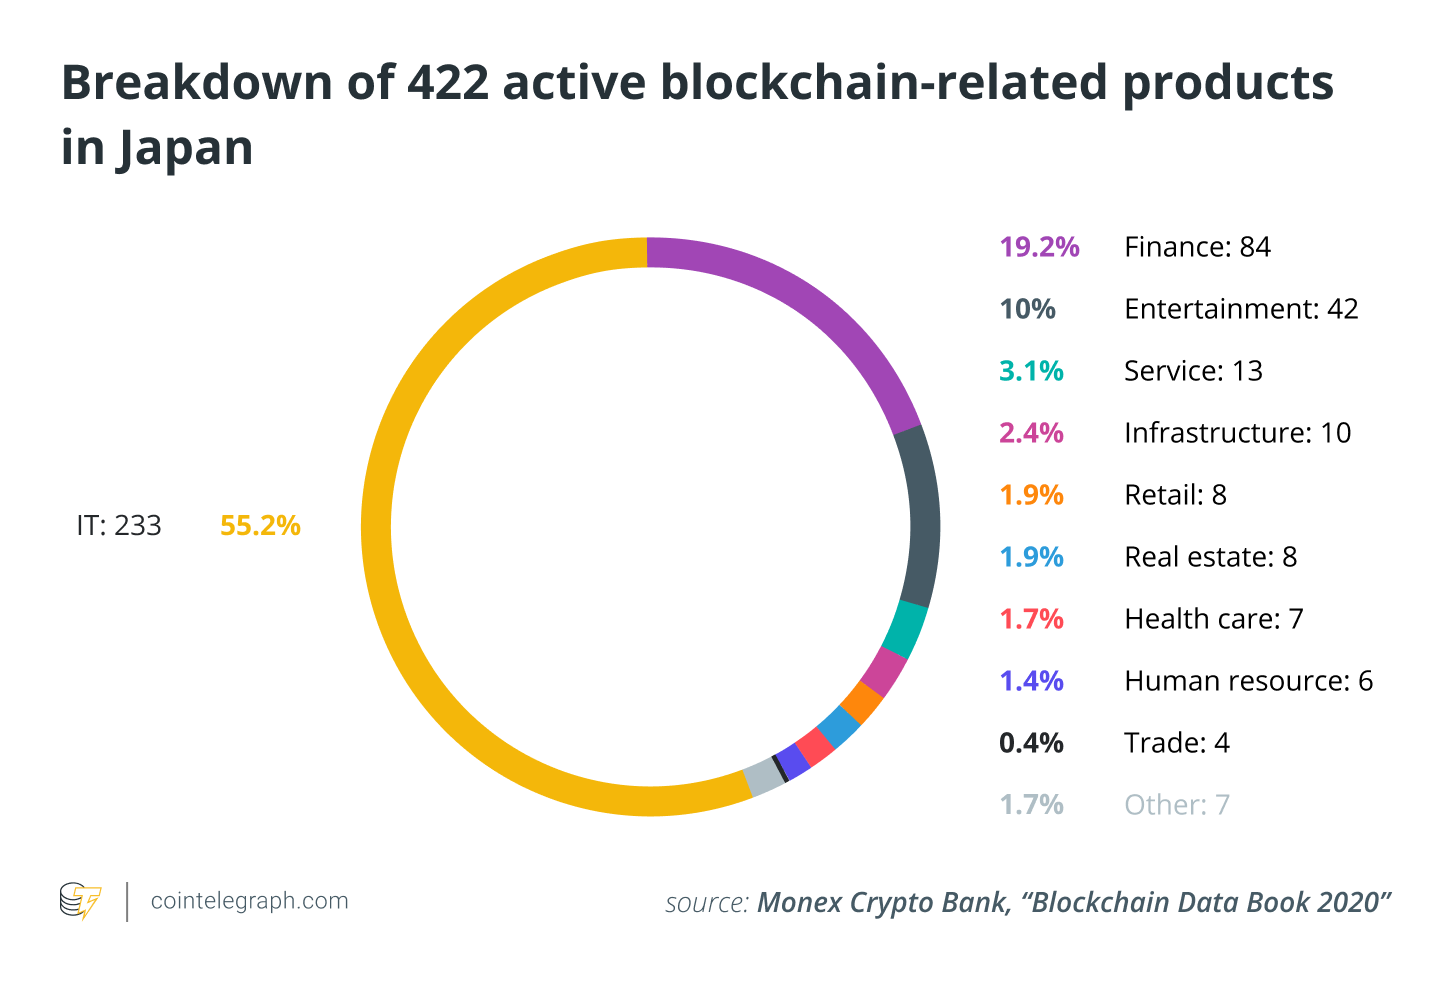 Breakdown of 422 active blockchain-related products